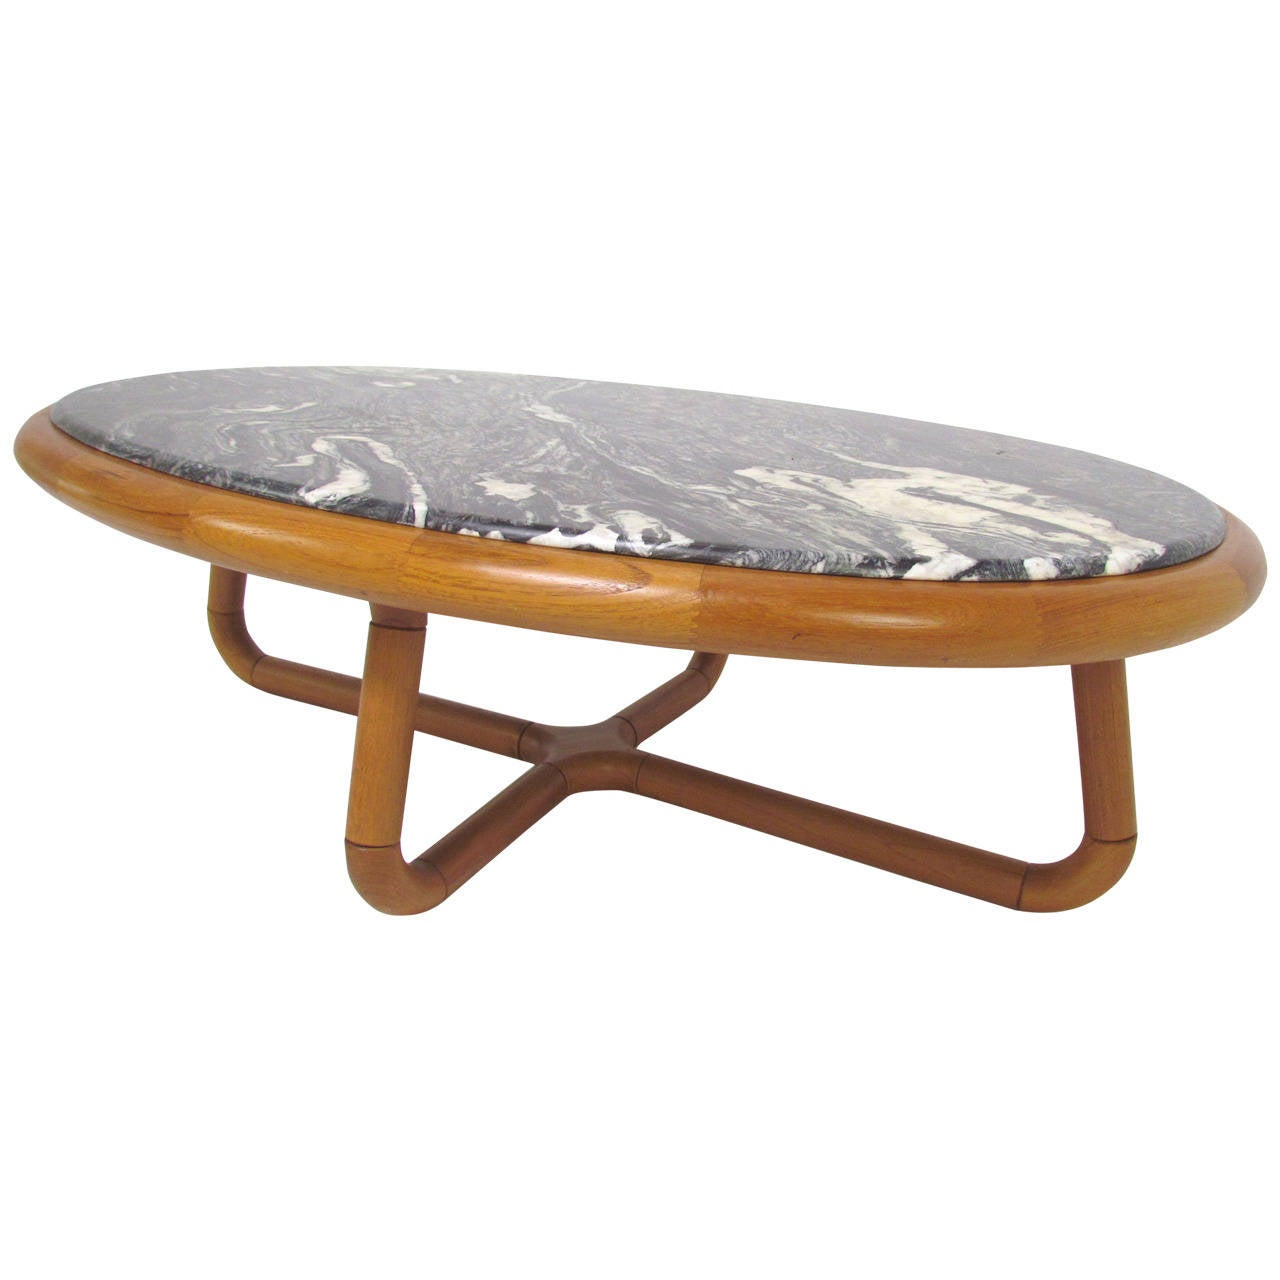 Scandinavian Teak Coffee Table: Sculptural Danish Teak Coffee Table With Zebra Marble Top